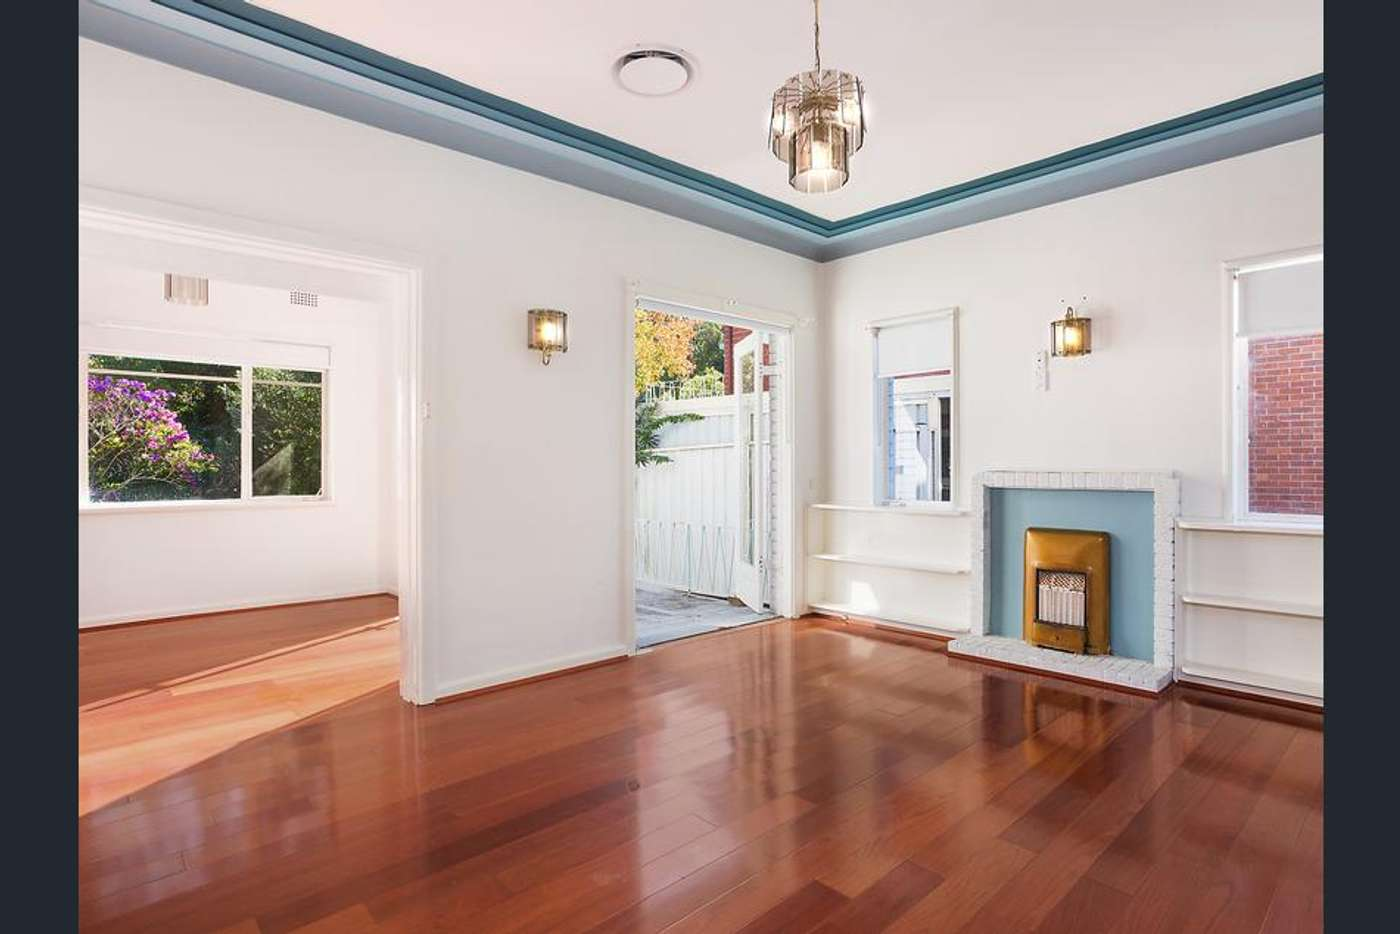 Main view of Homely house listing, 91 Bettington Road, Oatlands NSW 2117